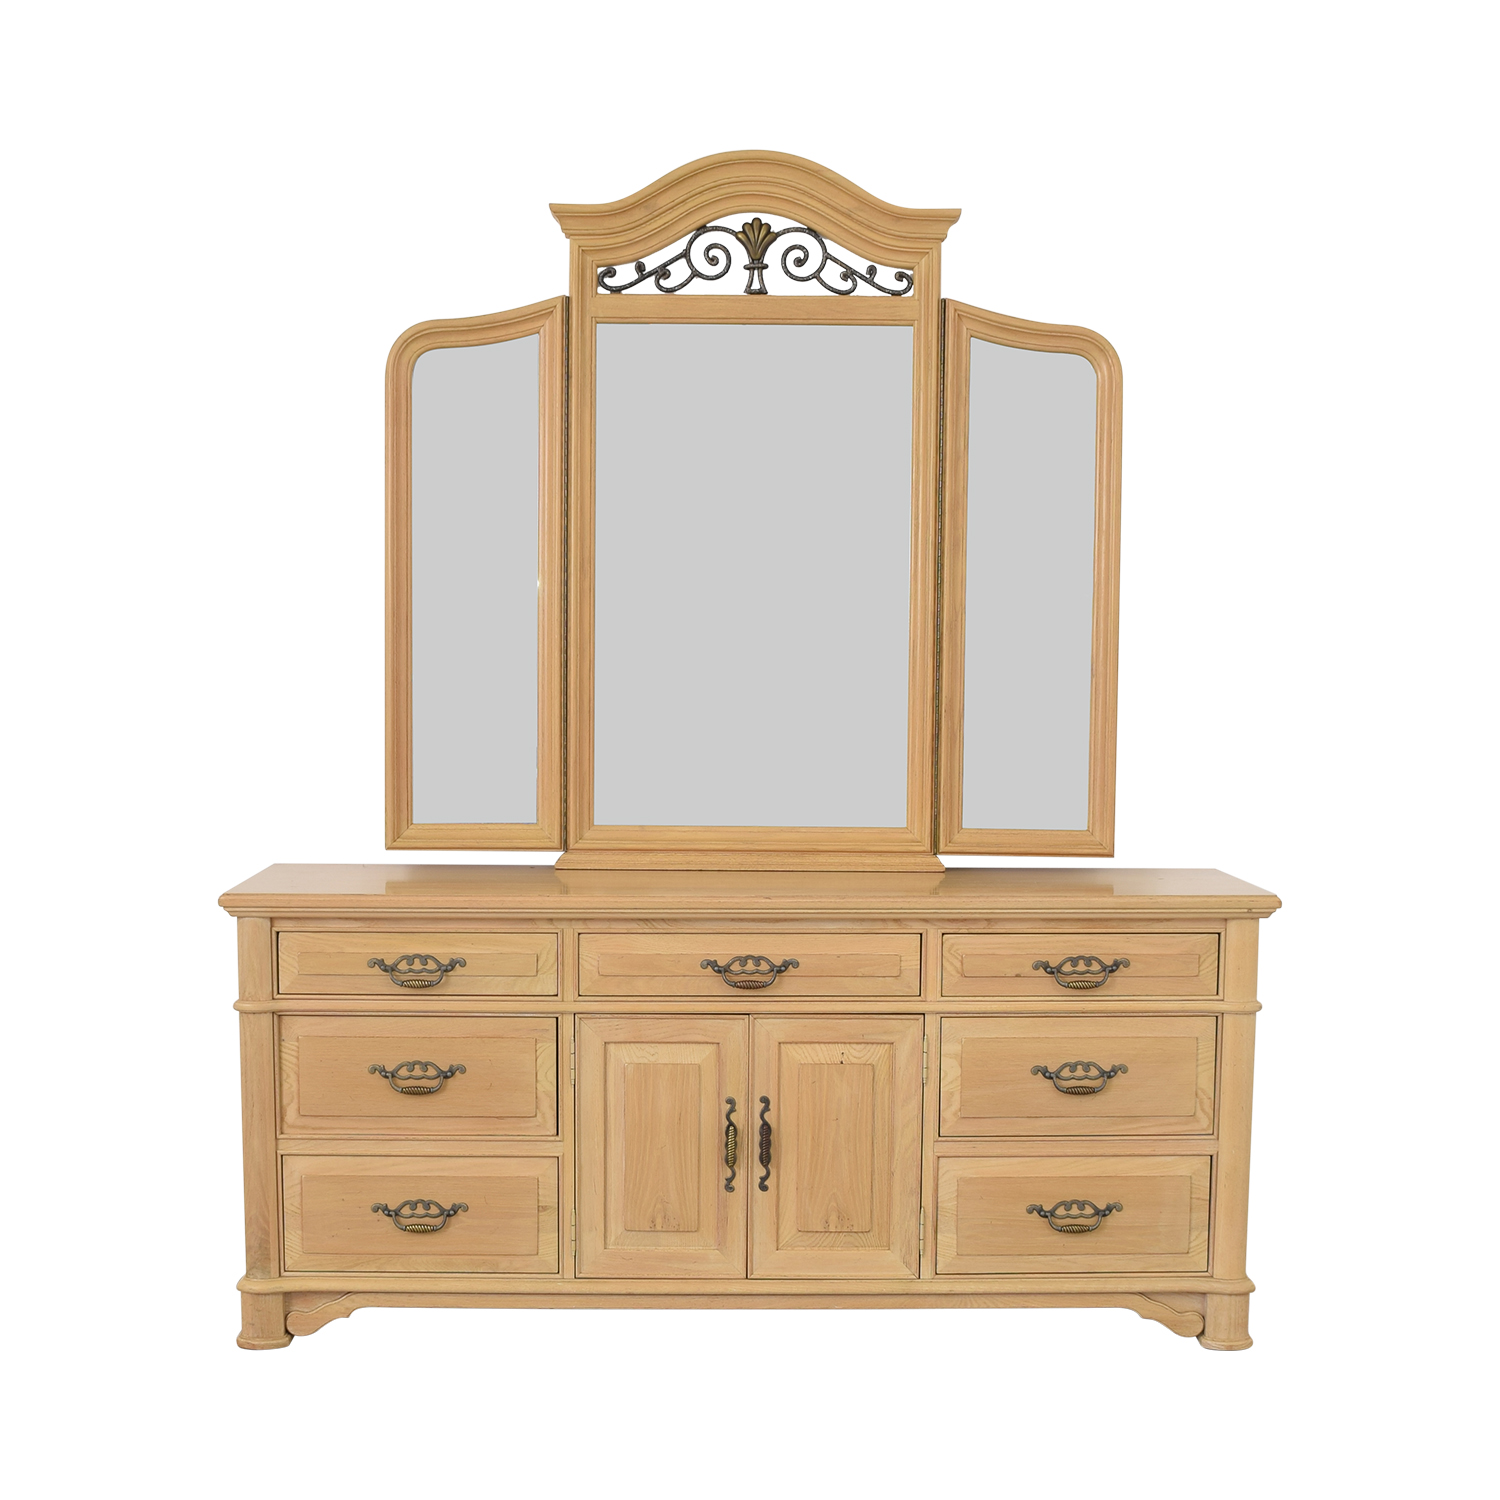 Thomasville Thomasville Triple Dresser with Mirror used